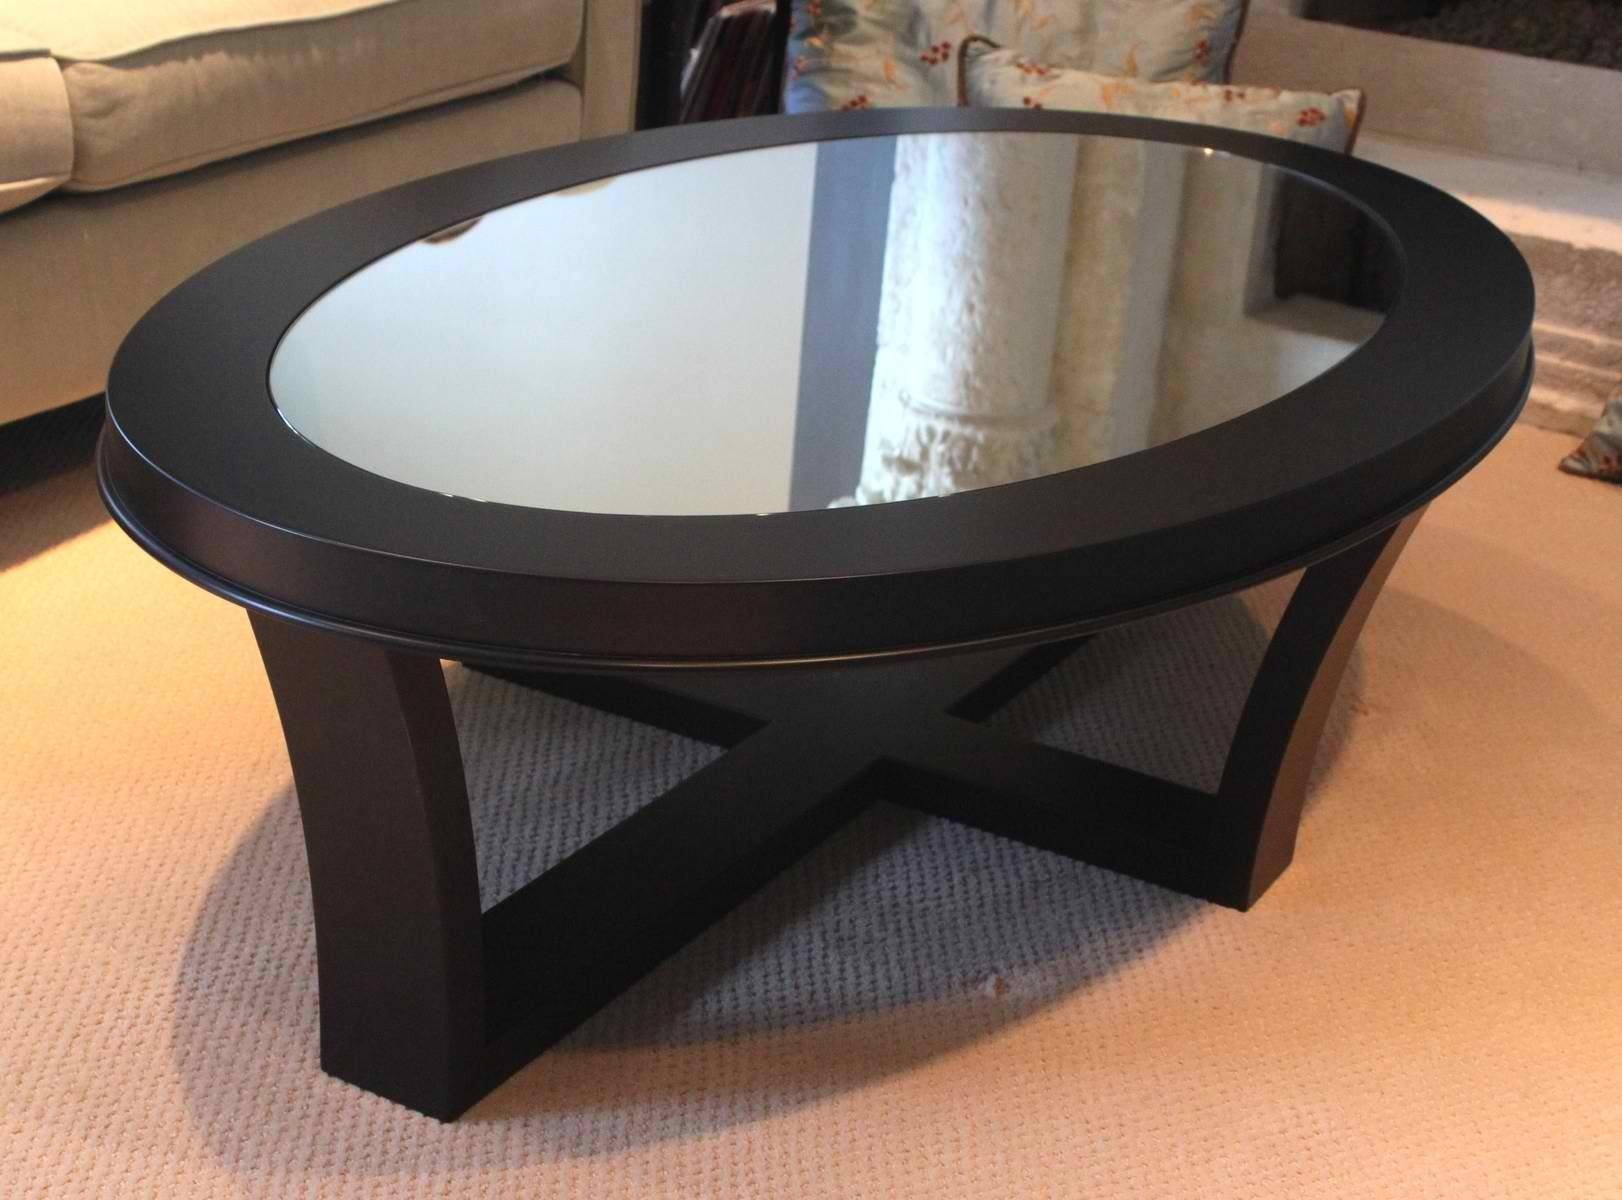 Living Room : Wondeful Glass Top Coffee Table Furniture Ideas With With Oval Shaped Glass Coffee Tables (Photo 4 of 30)